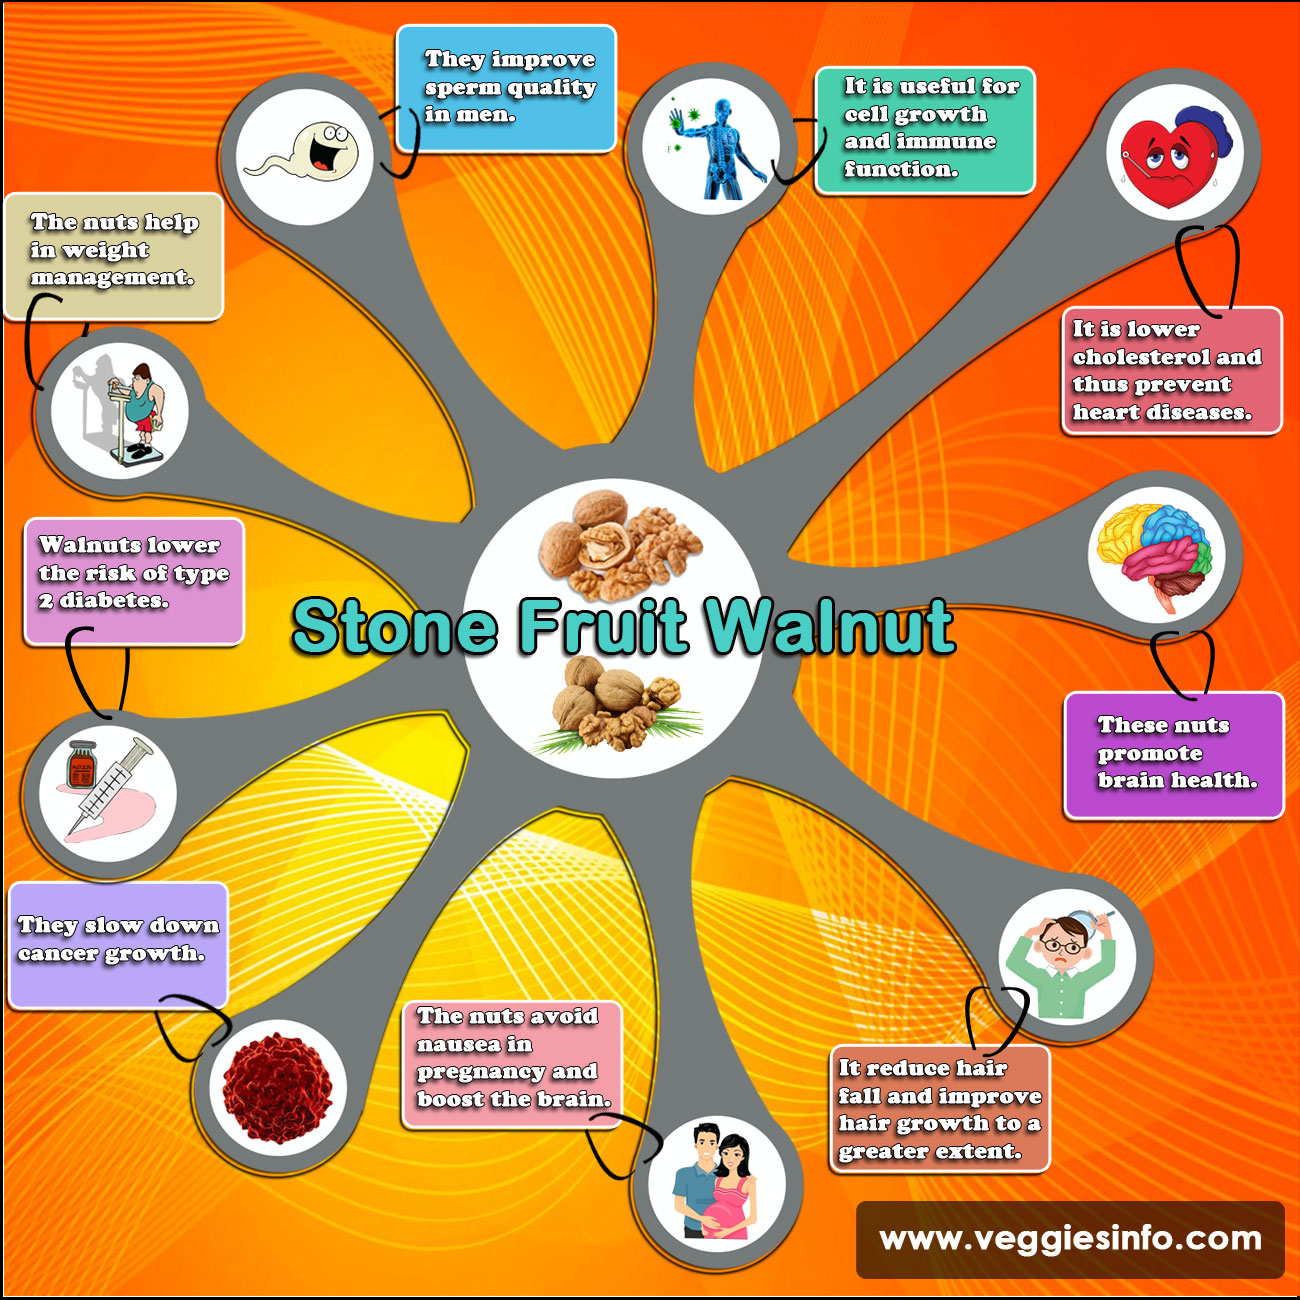 Stone Fruit Walnut Uses and Health Benefits | Veggies Info